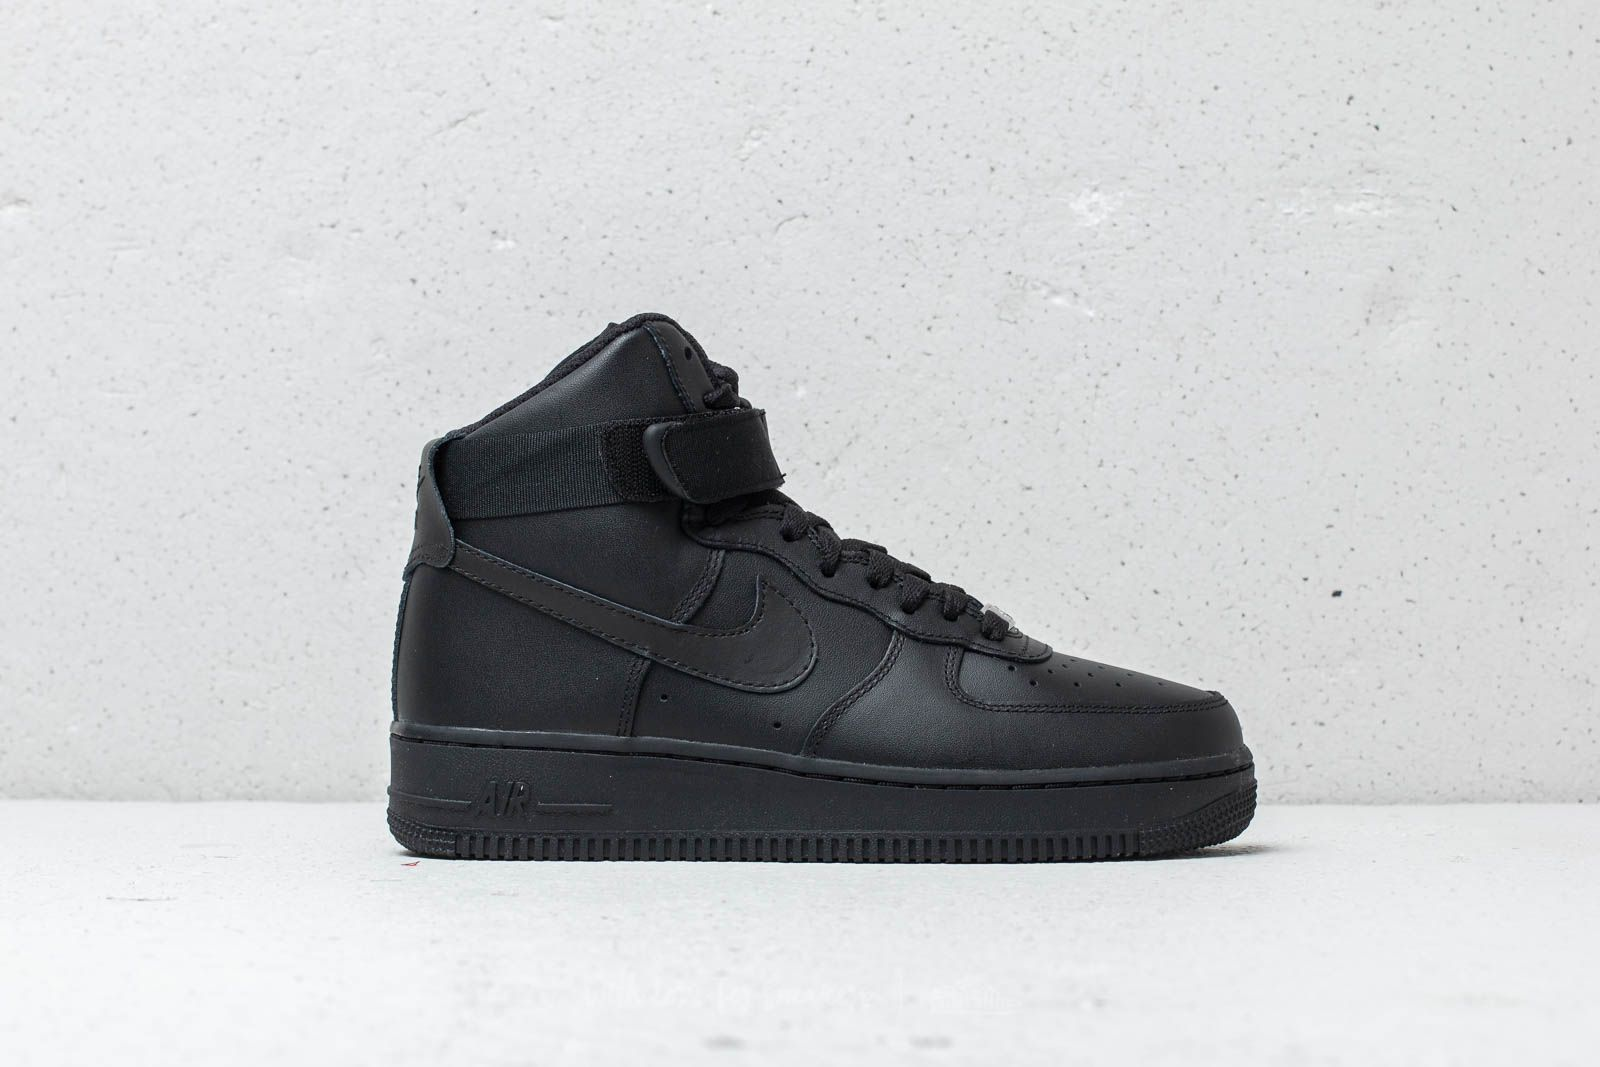 eb89350af997 Nike Wmns Air Force 1 High Black  Black-Black at a great price 117